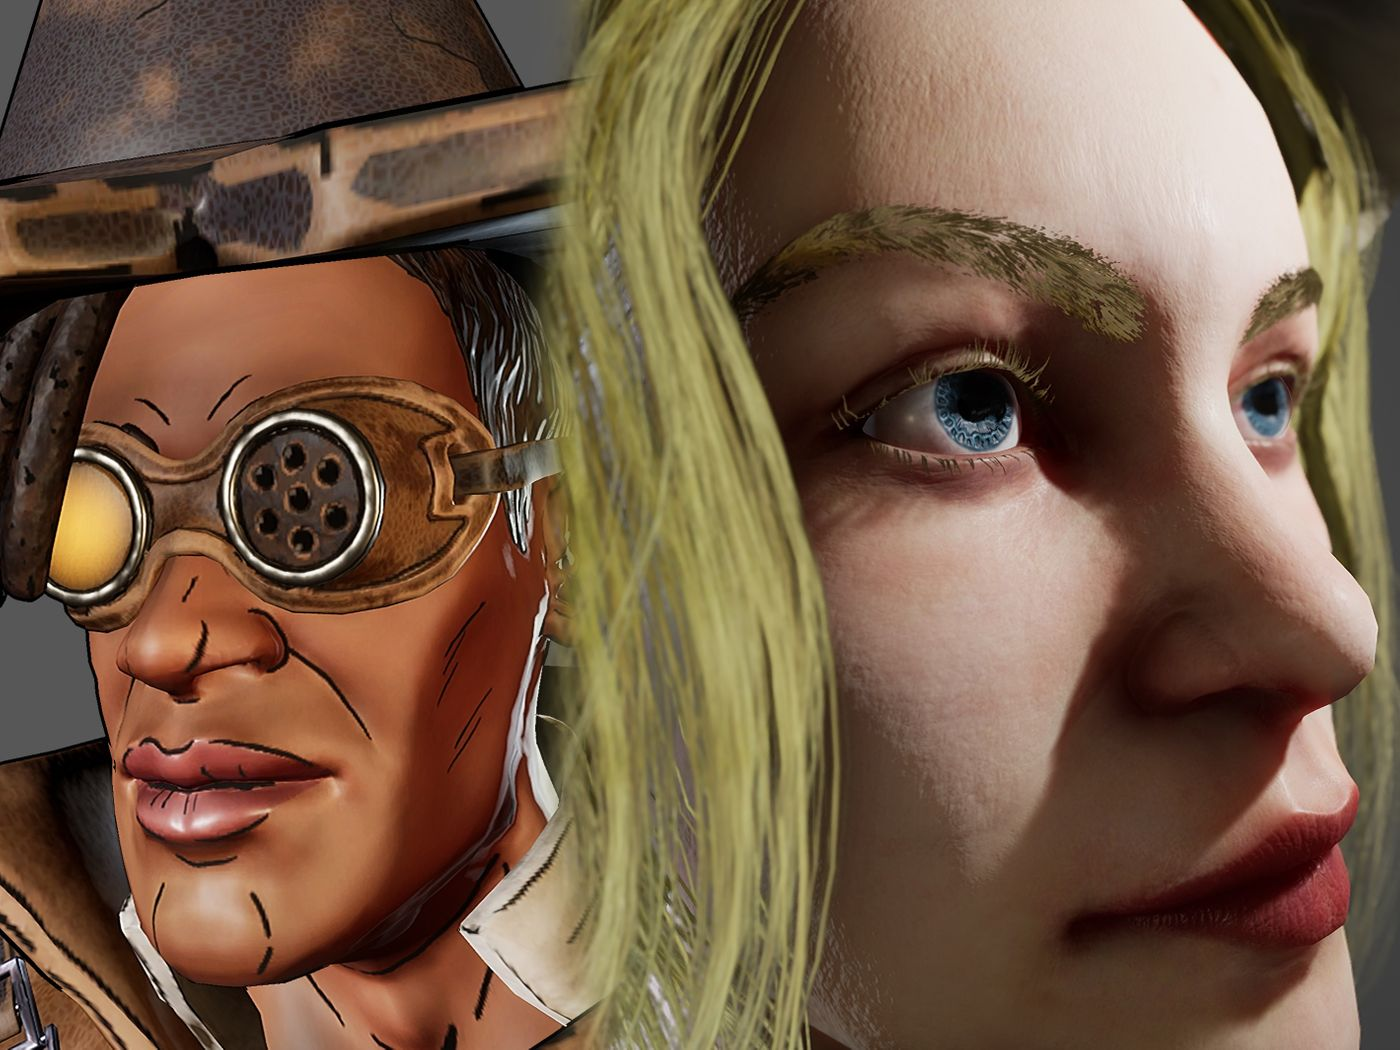 Borderlands Fan Art : Clay & Realtime Character: Tavern Keeper